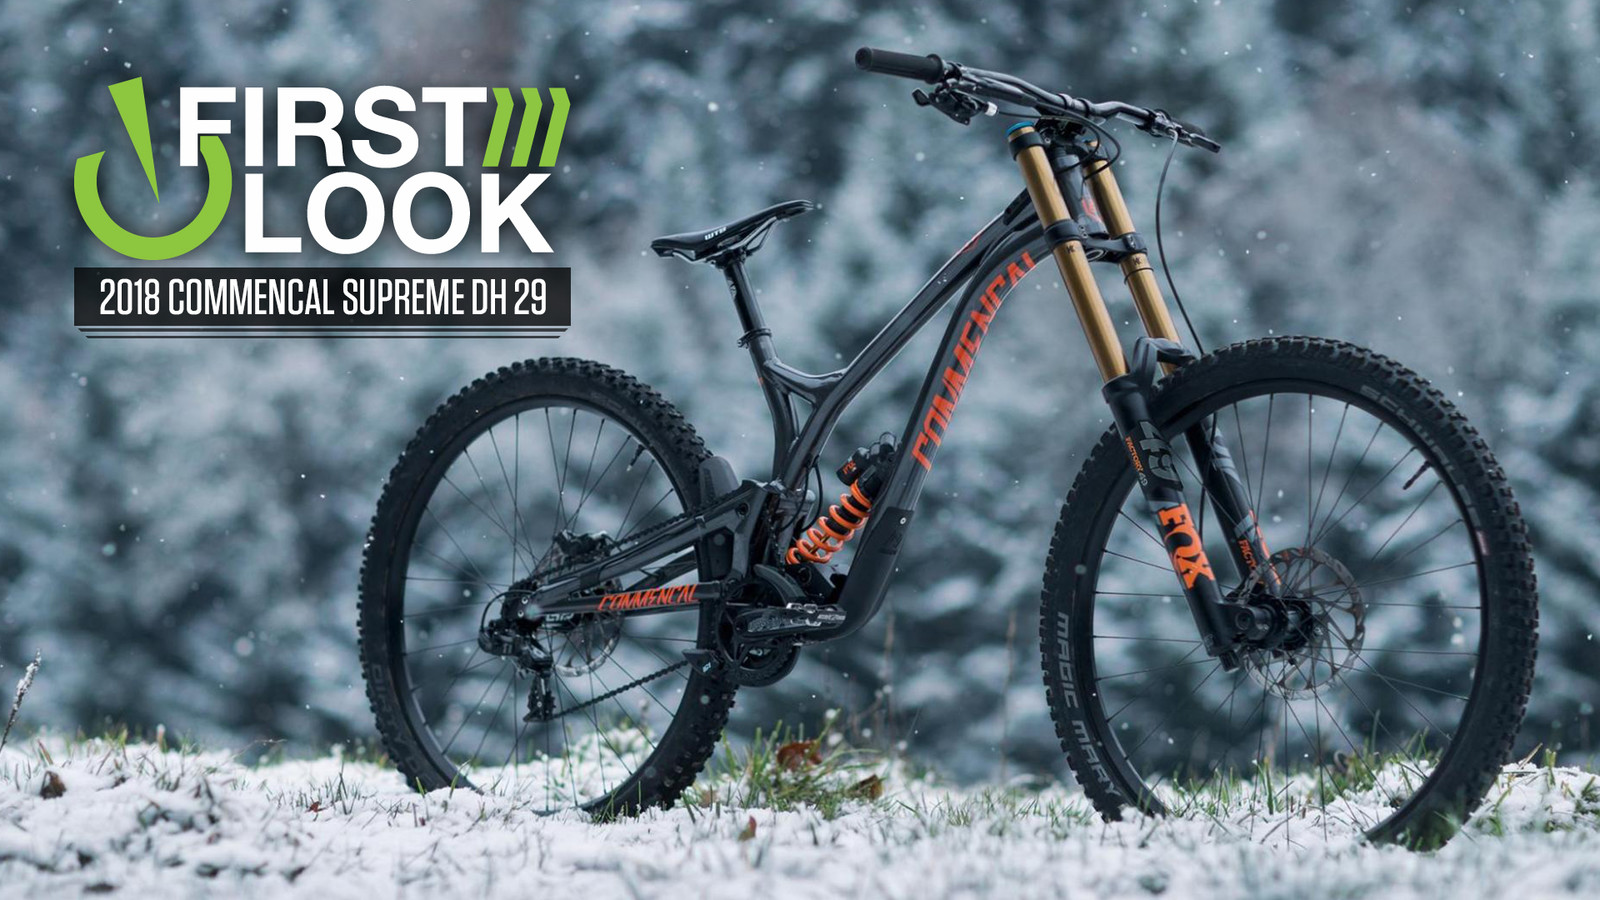 First Look: Commencal Supreme DH 29